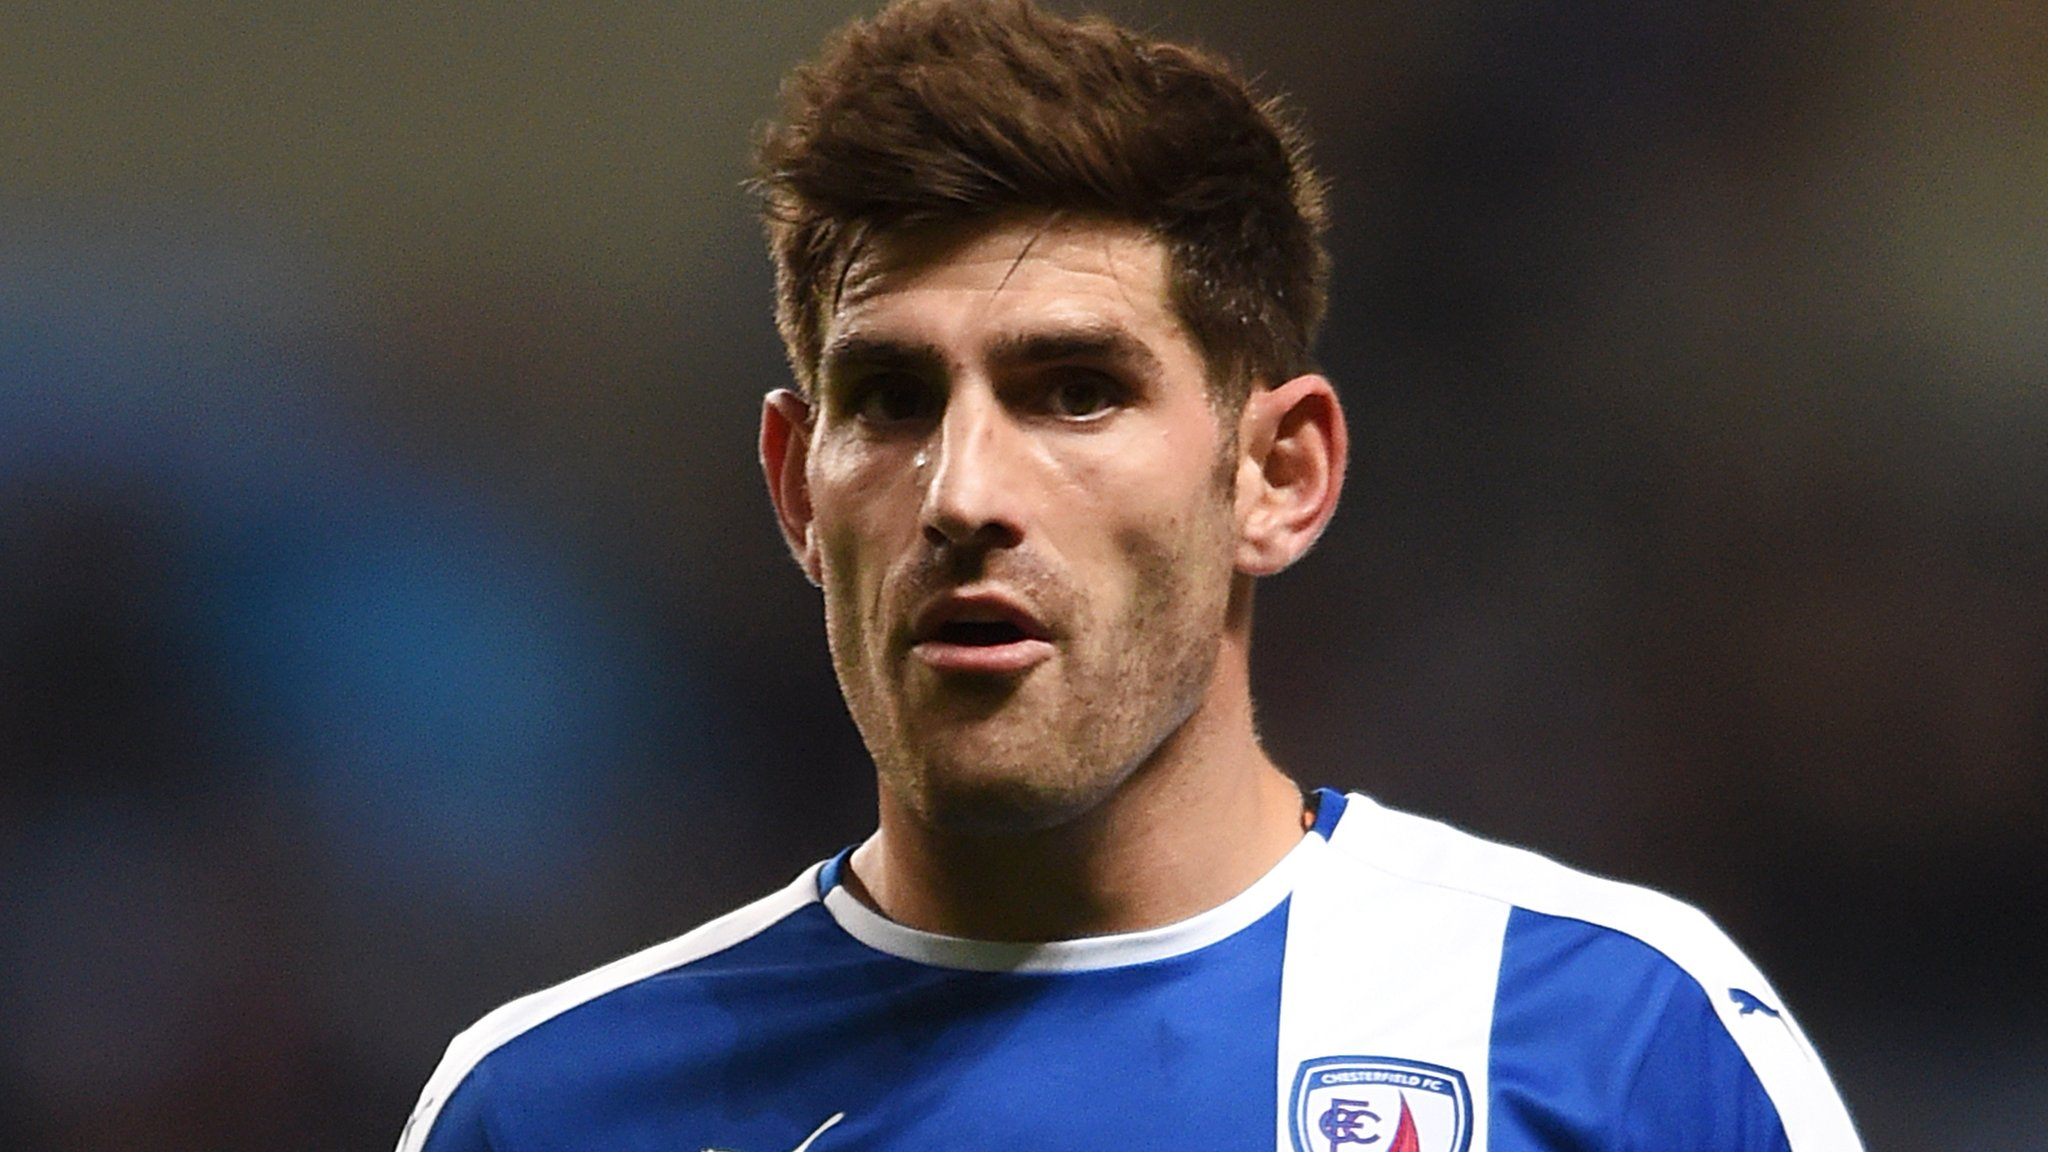 Ched Evans: Sheffield United Re-sign Striker from Chesterfield